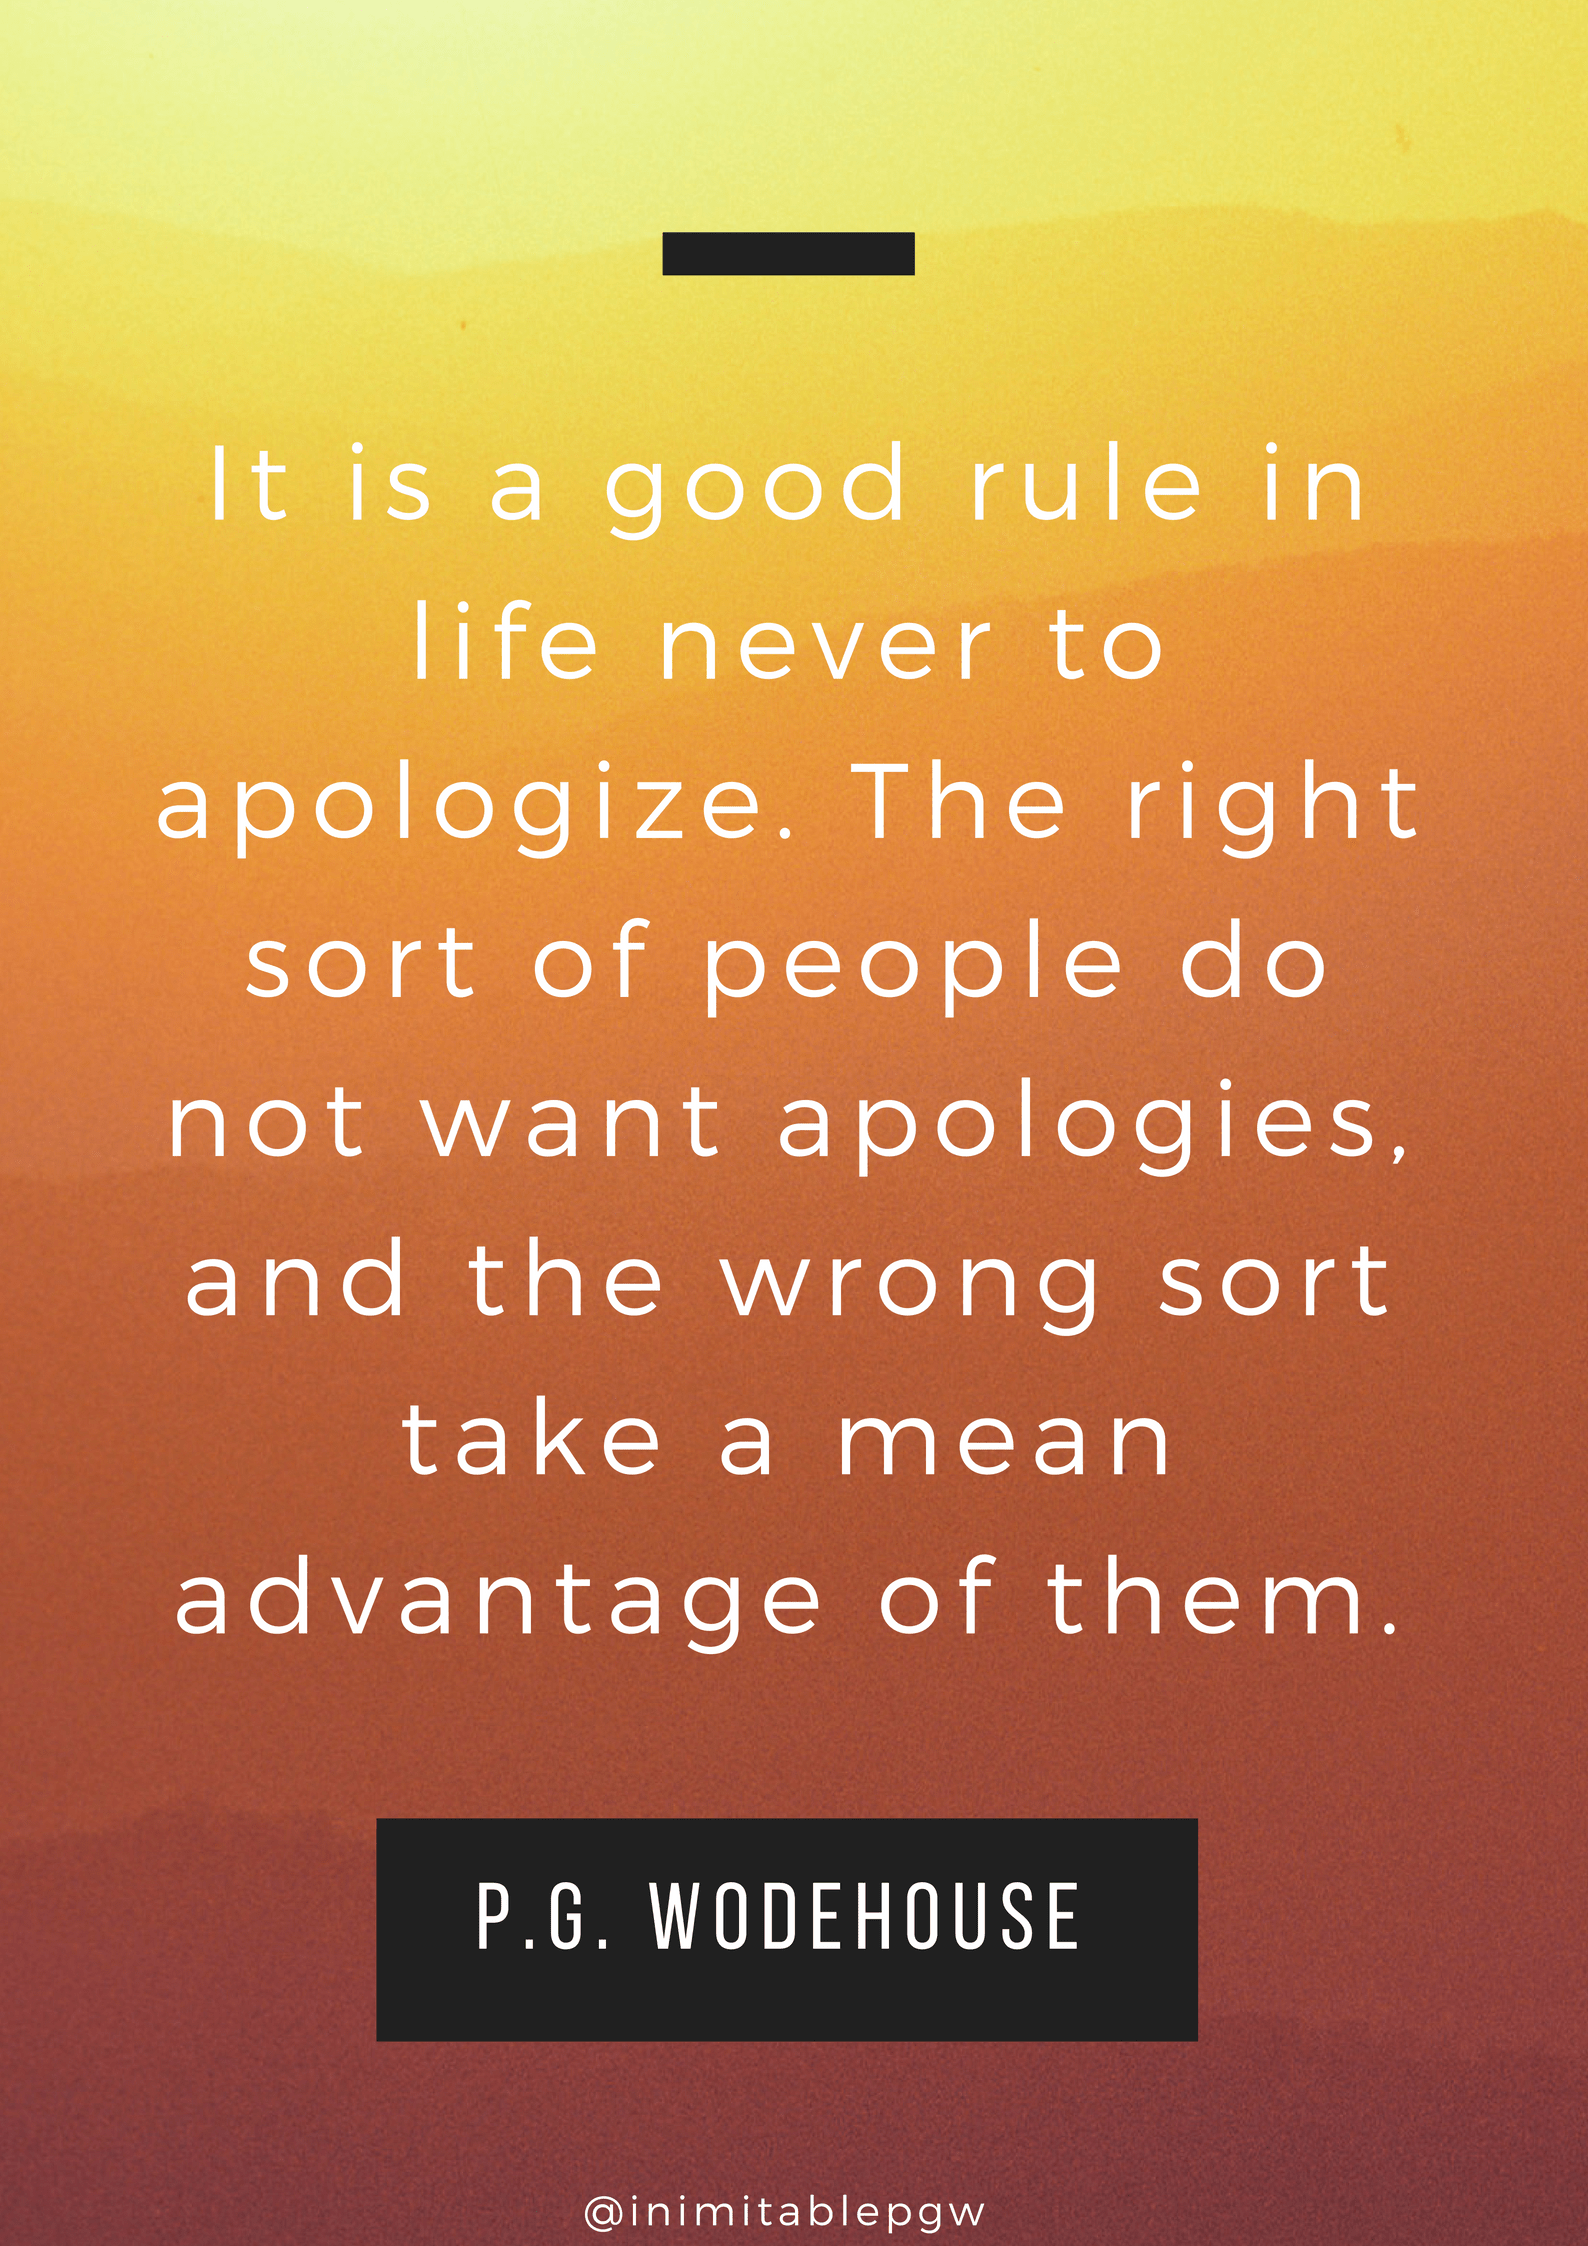 """It is a good rule in life never to apologize…"" – P.G. Wodehouse [1588×2246]"